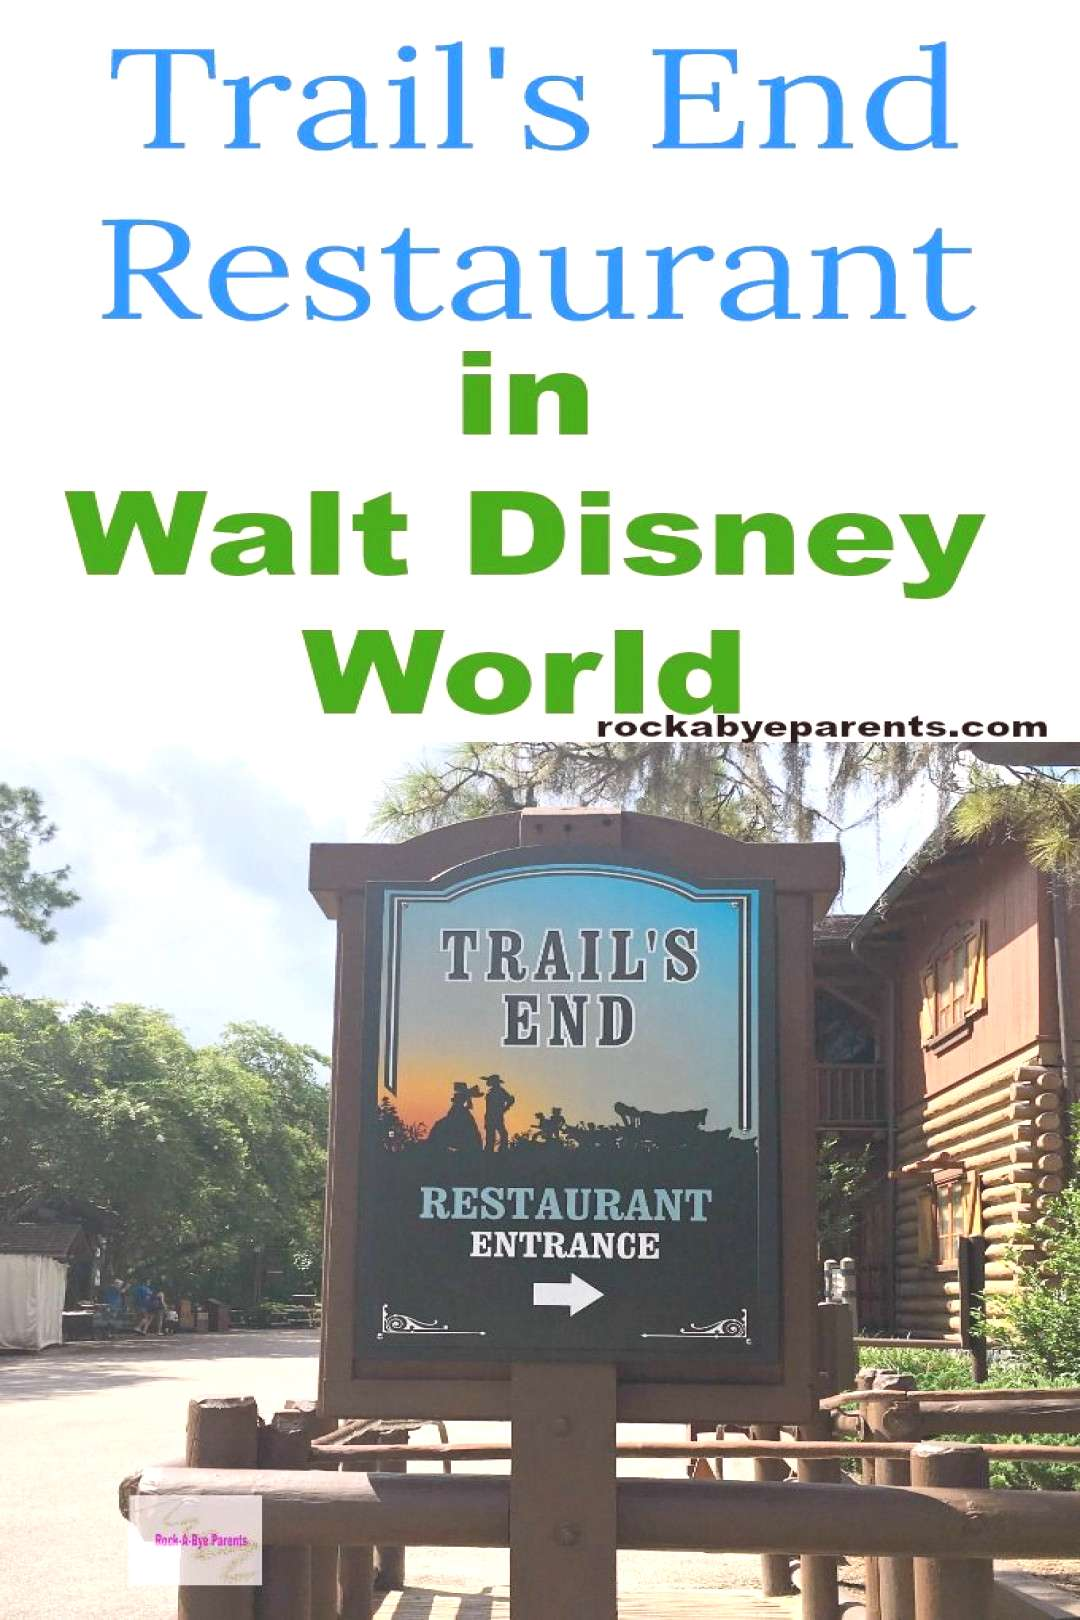 Trail's End Restaurant in Walt Disney World - Fort Wilderness Resort Looking for a good buffet at W